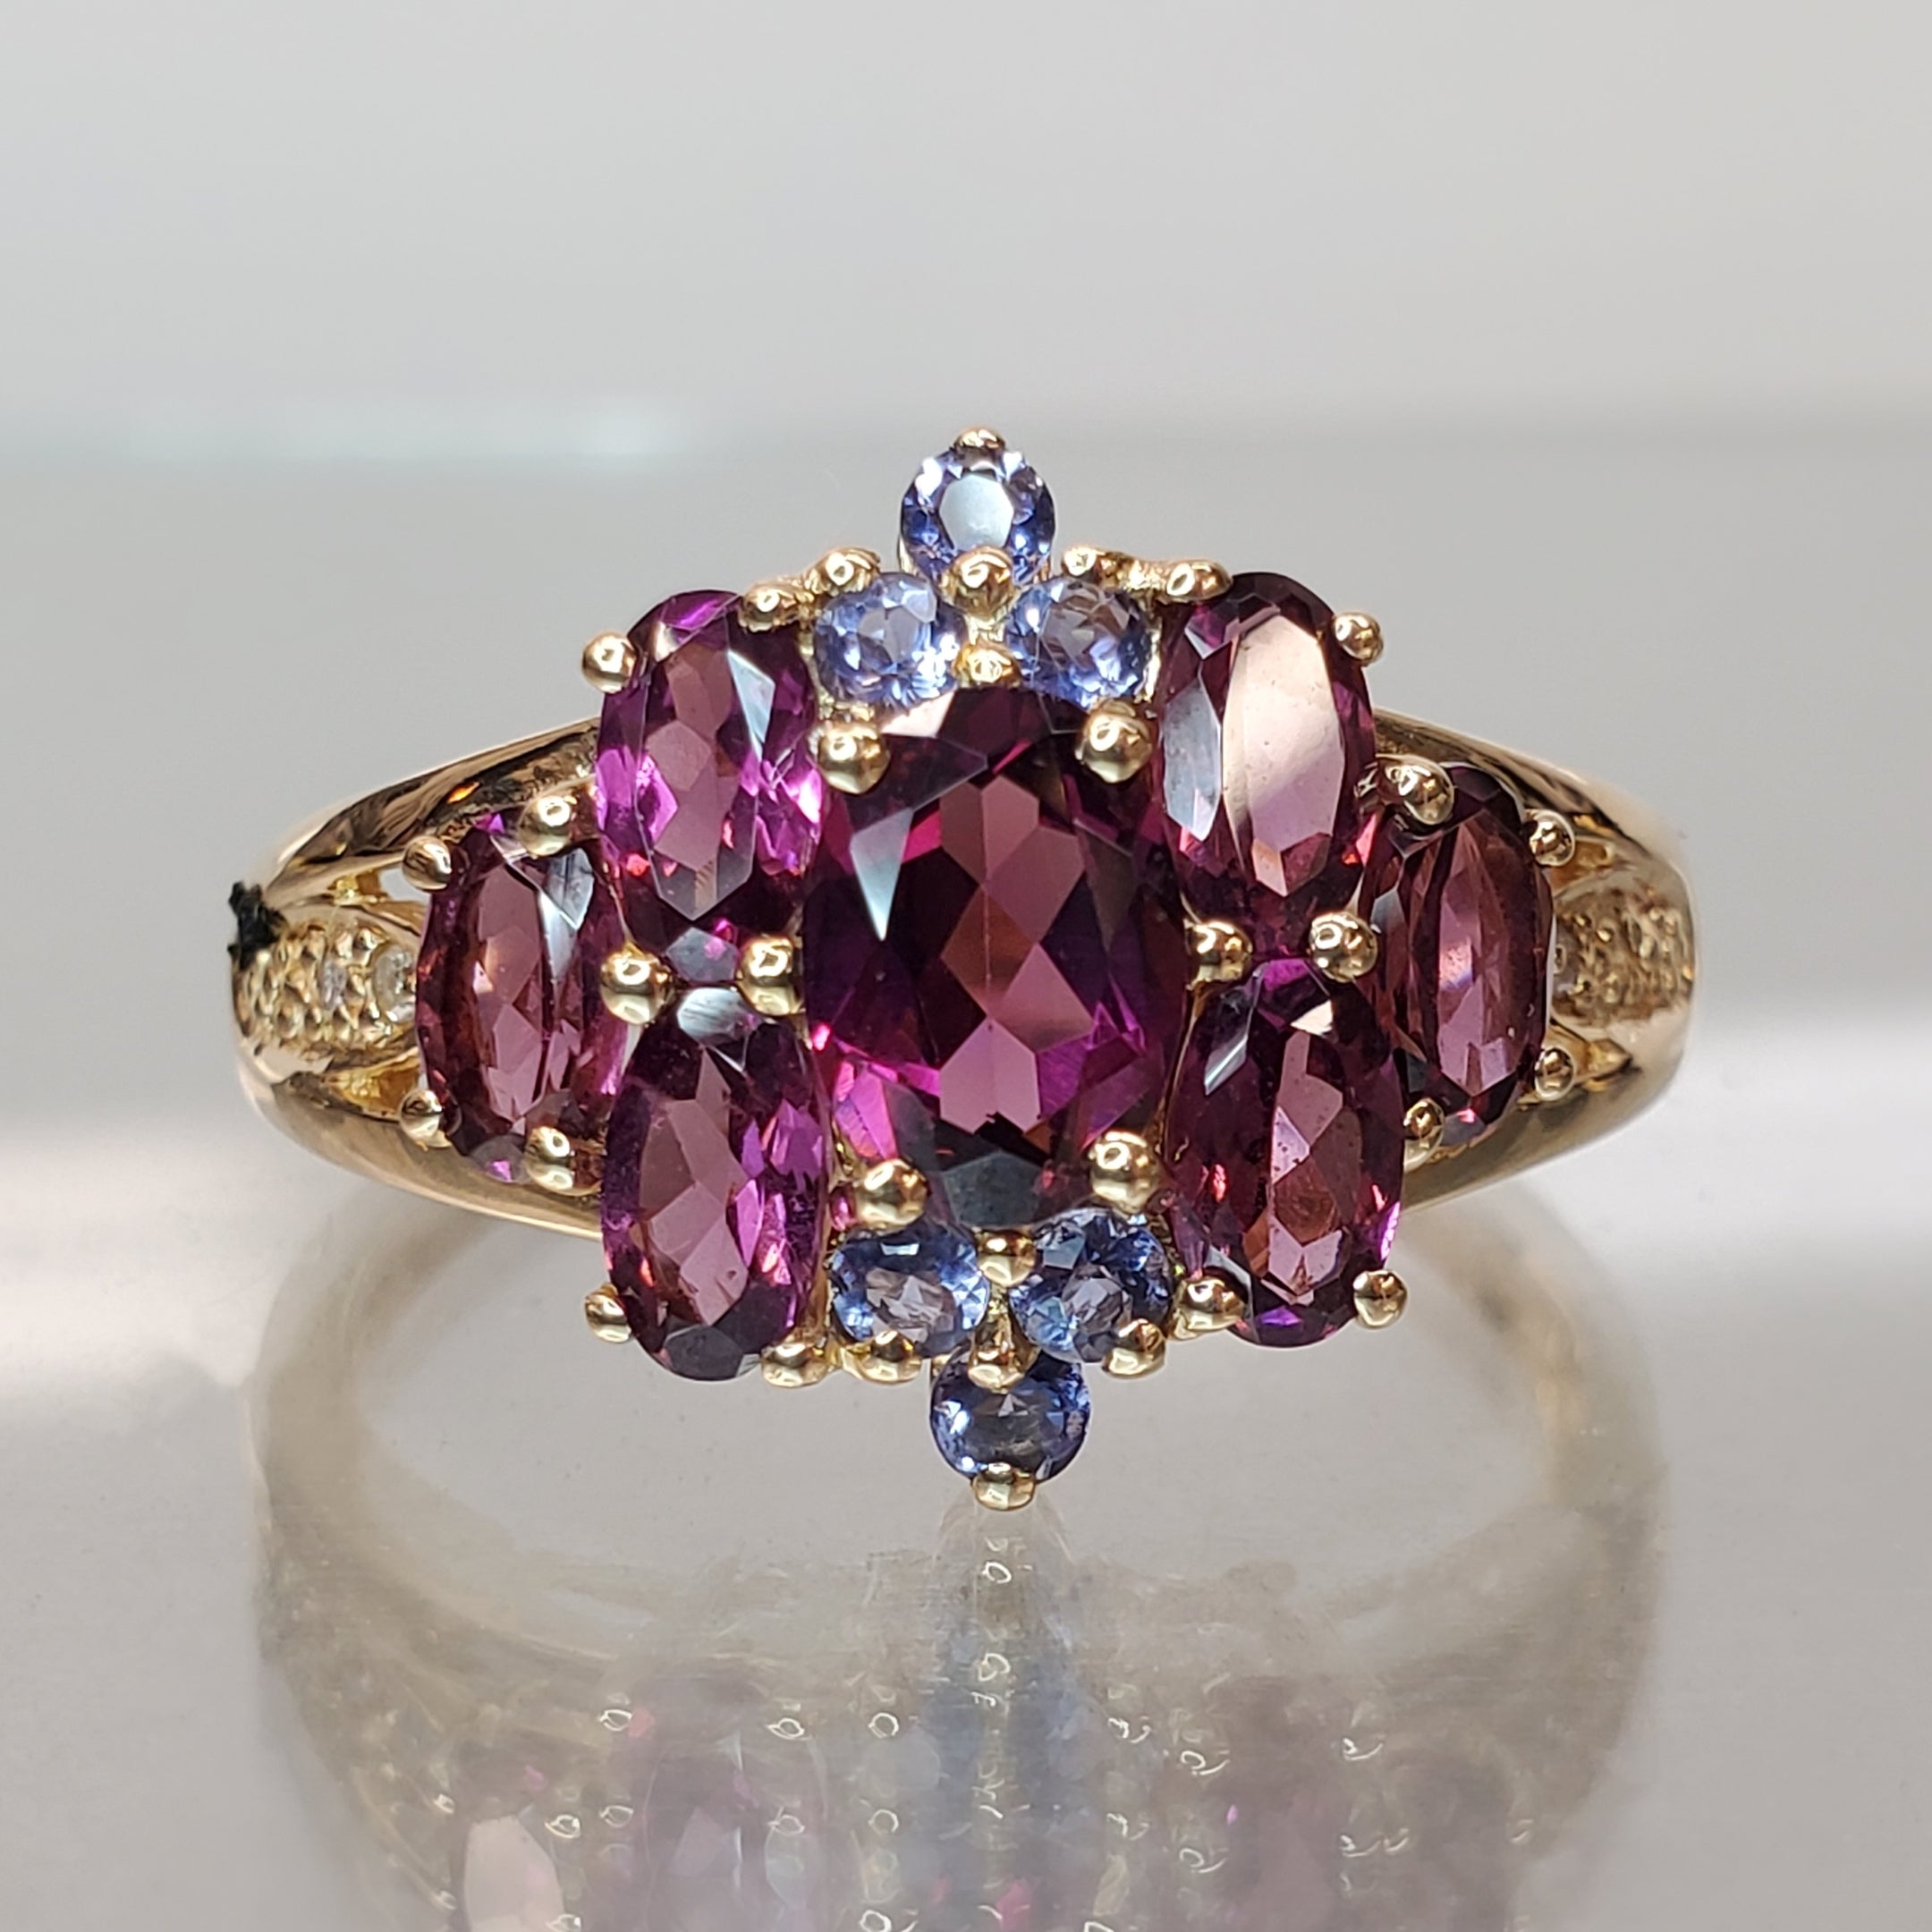 14 karat yellow gold, oval garnets and round tanzanite accent, estate ring